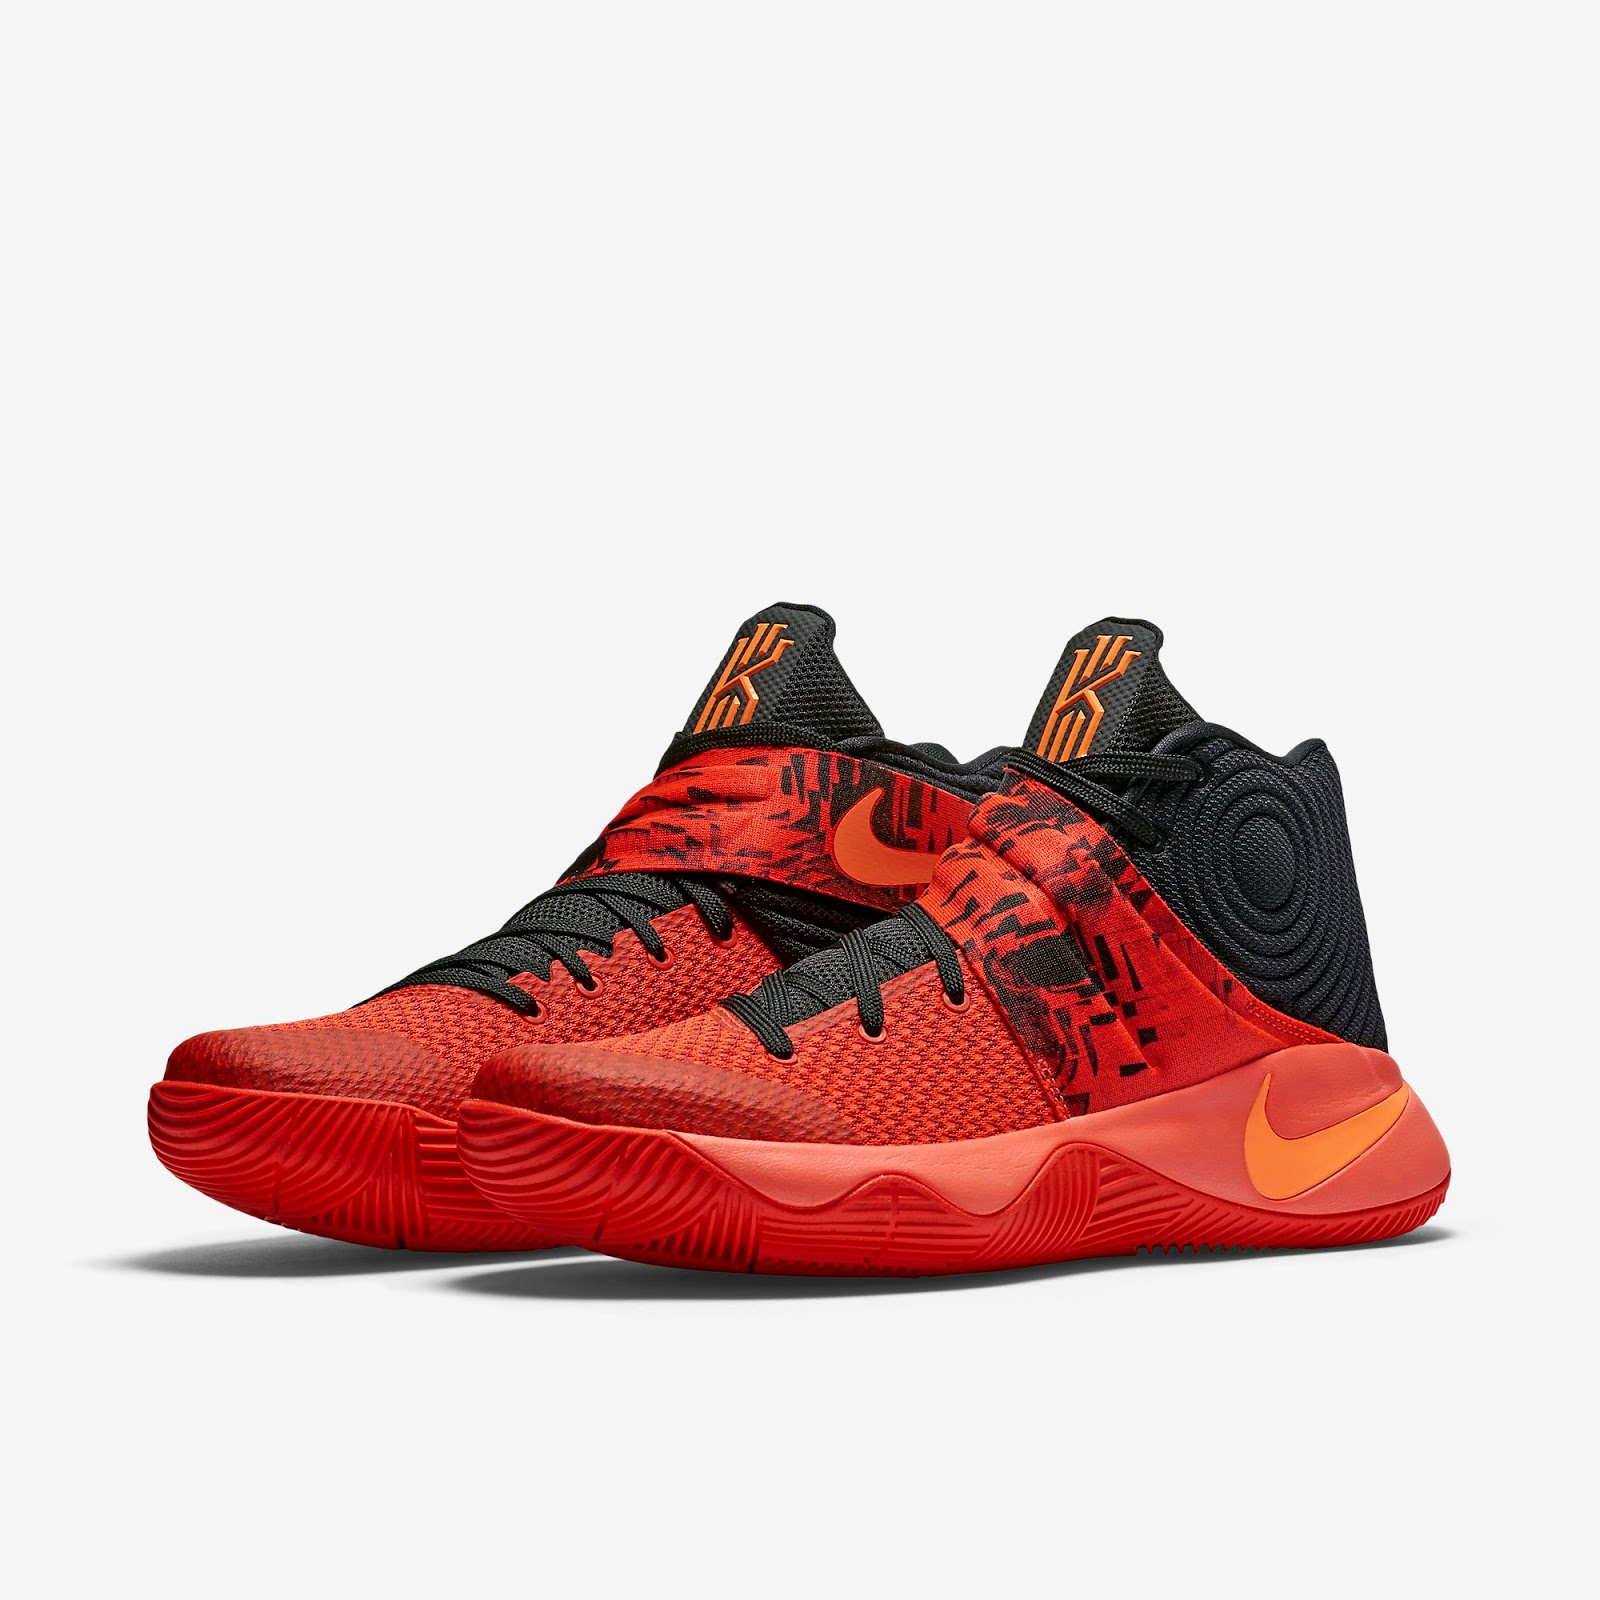 edaf6efeba8d ajordanxi Your  1 Source For Sneaker Release Dates  Nike Kyrie 2 ...